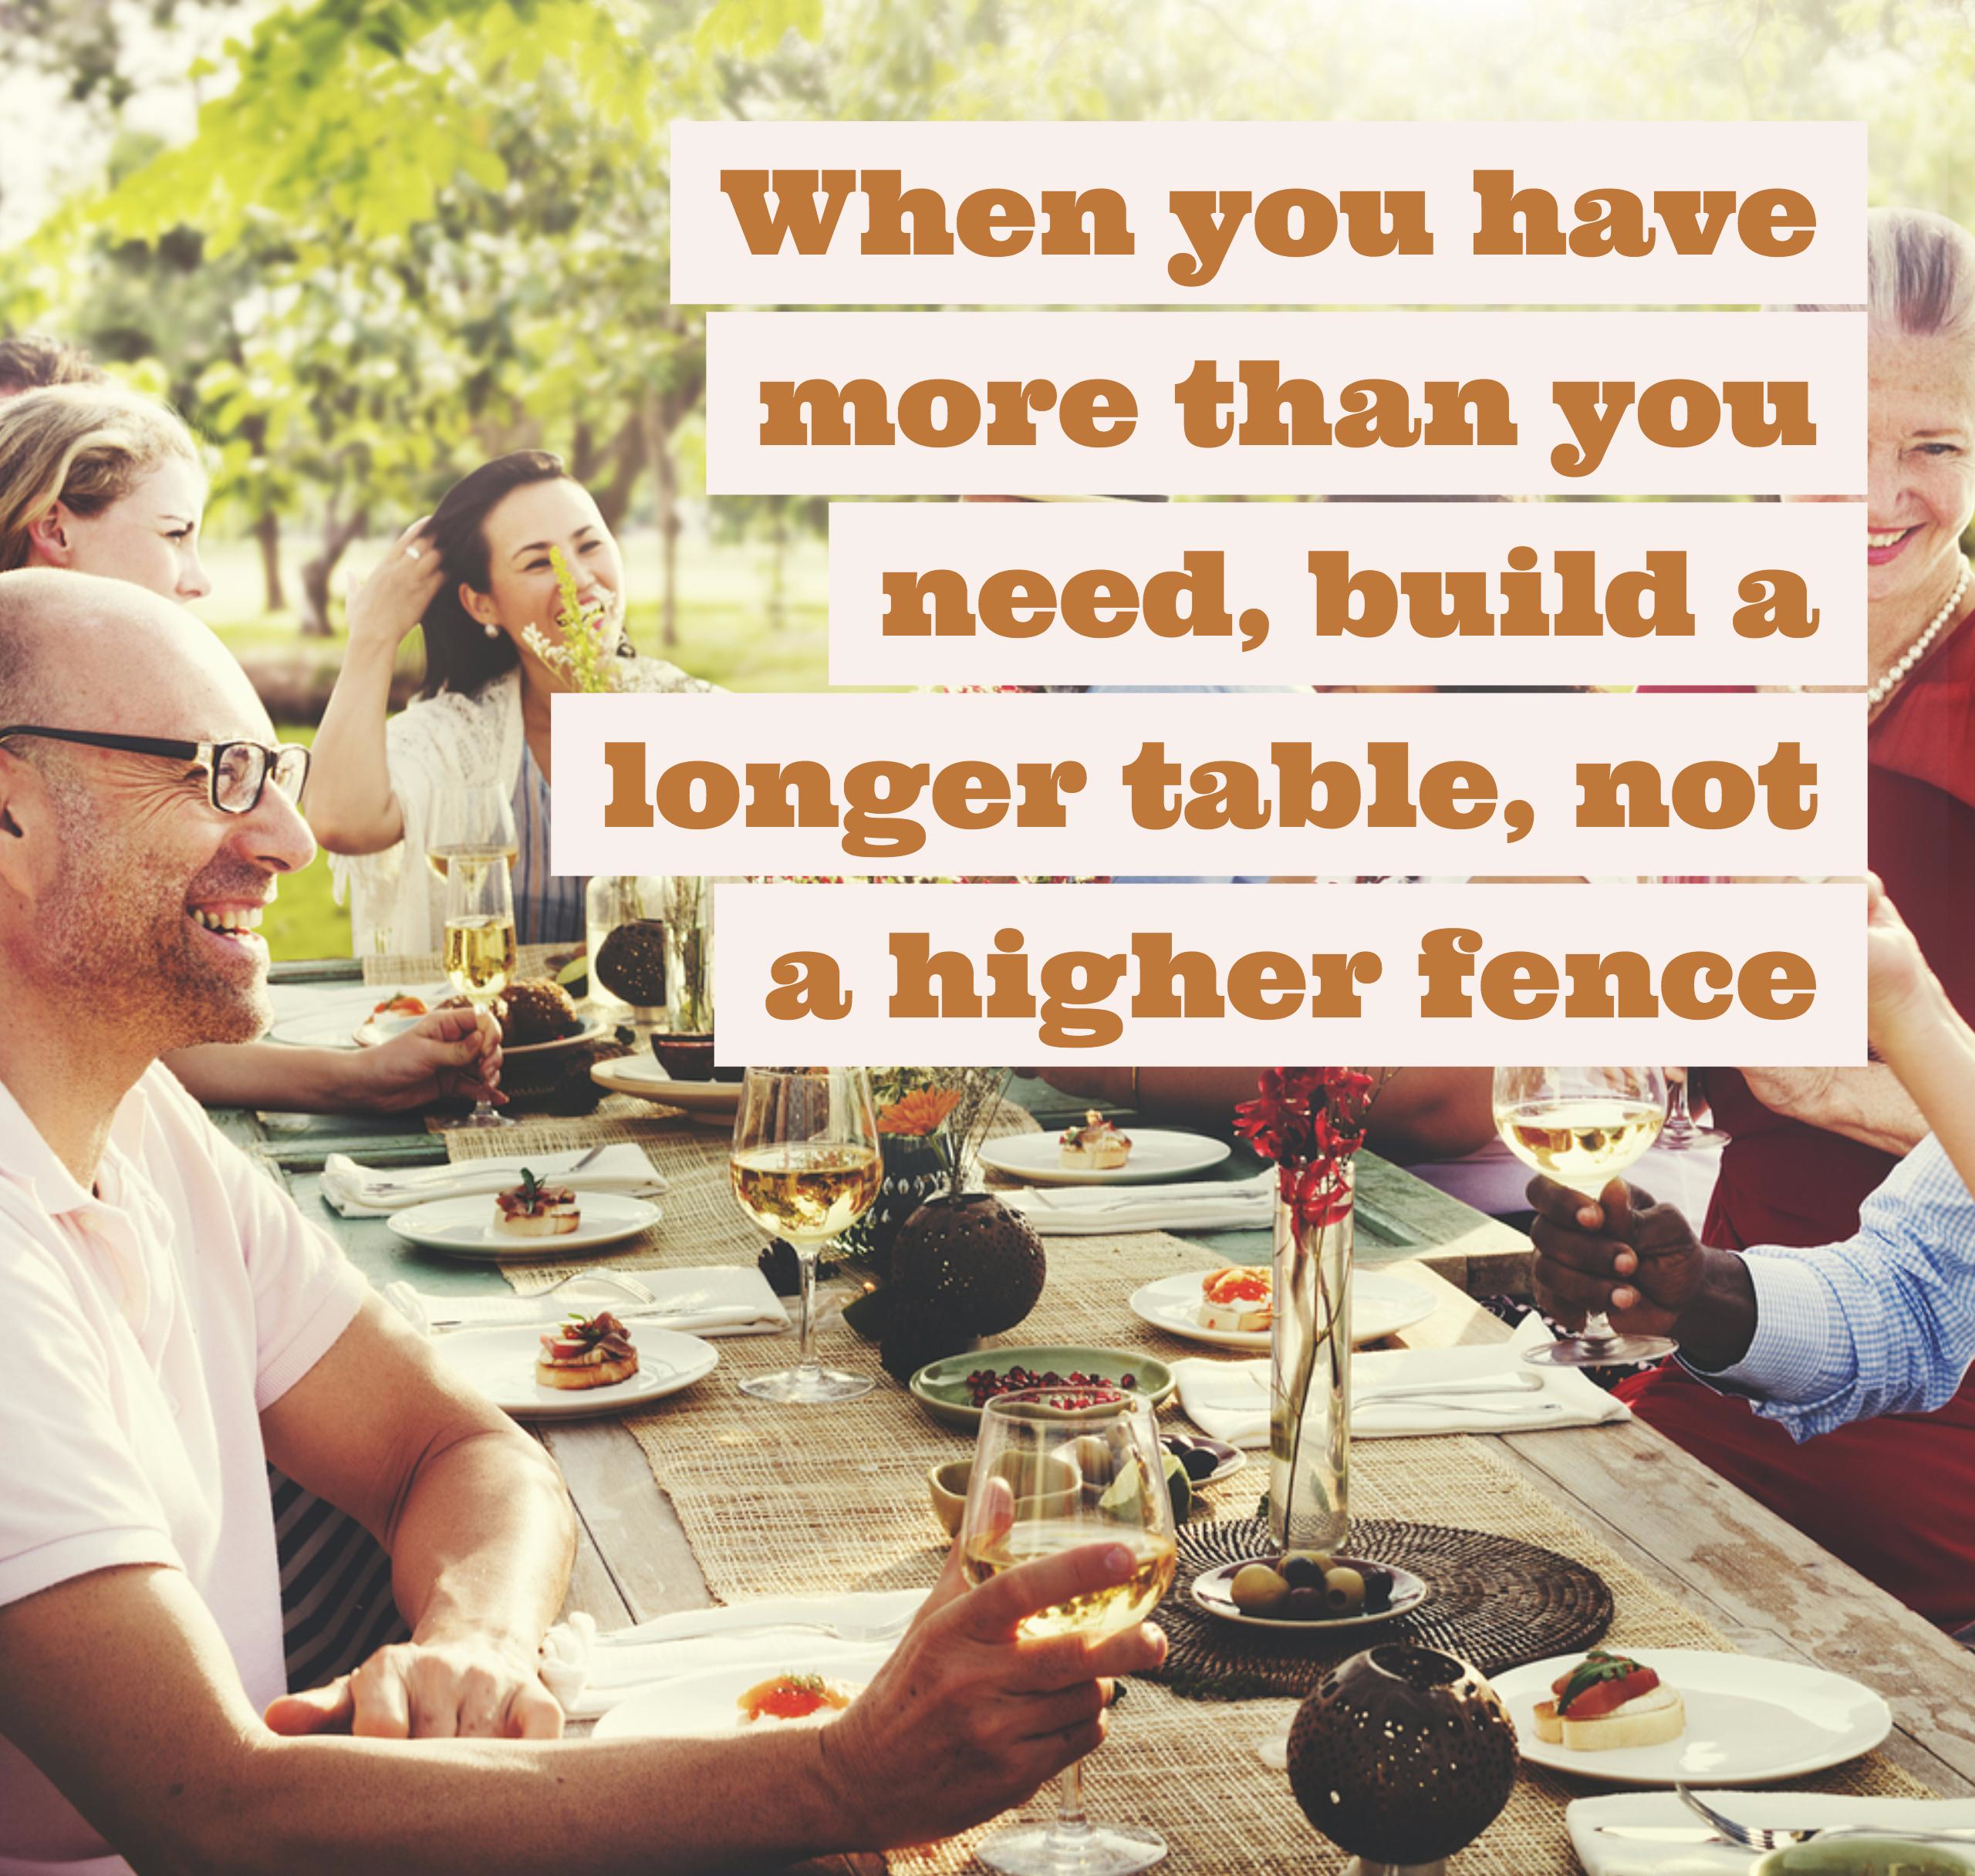 Build a longer table, not a higher fence.